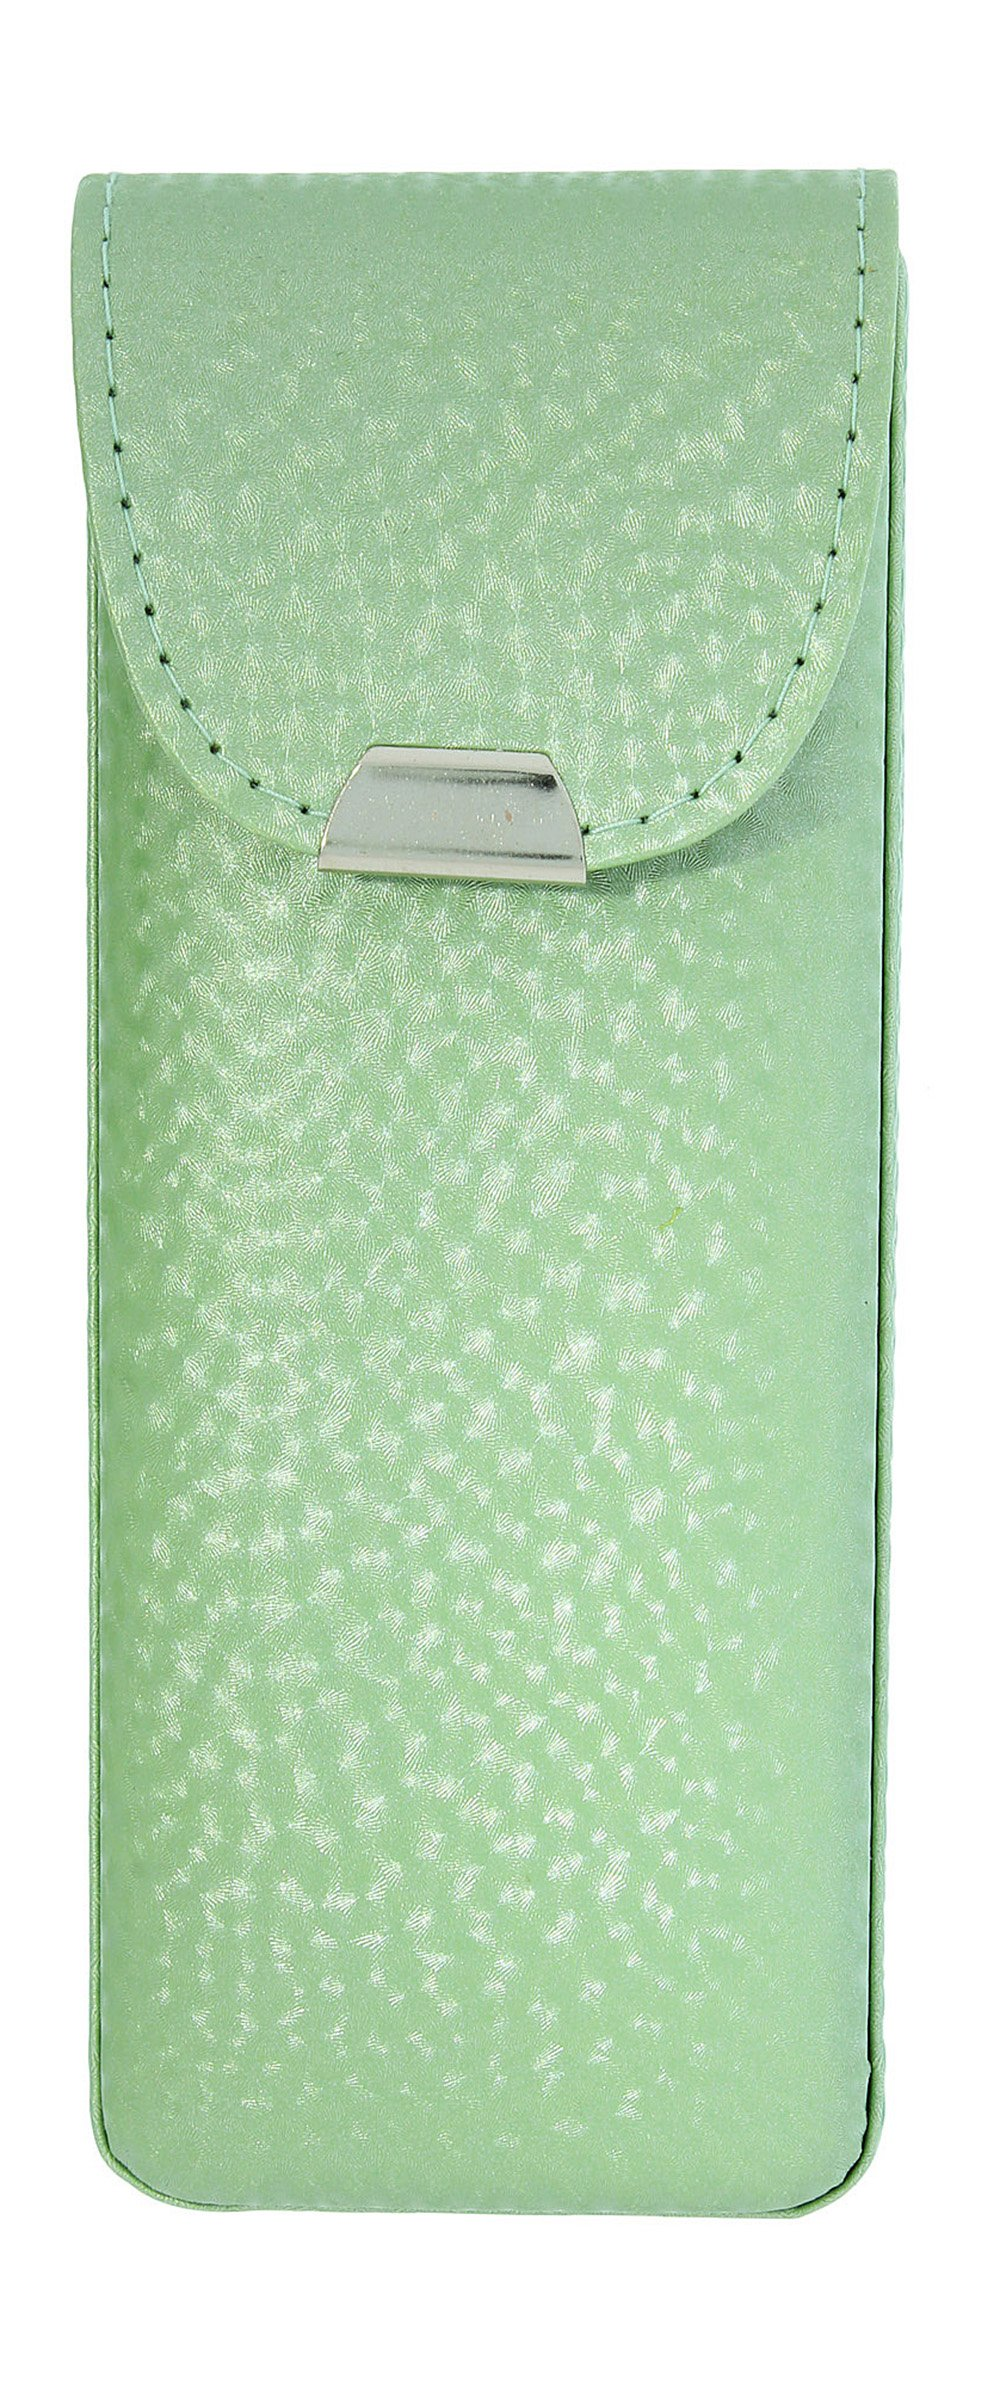 Eyeglass Case Top Snap Closure Metal Embellishment Pearly Shade Of Green